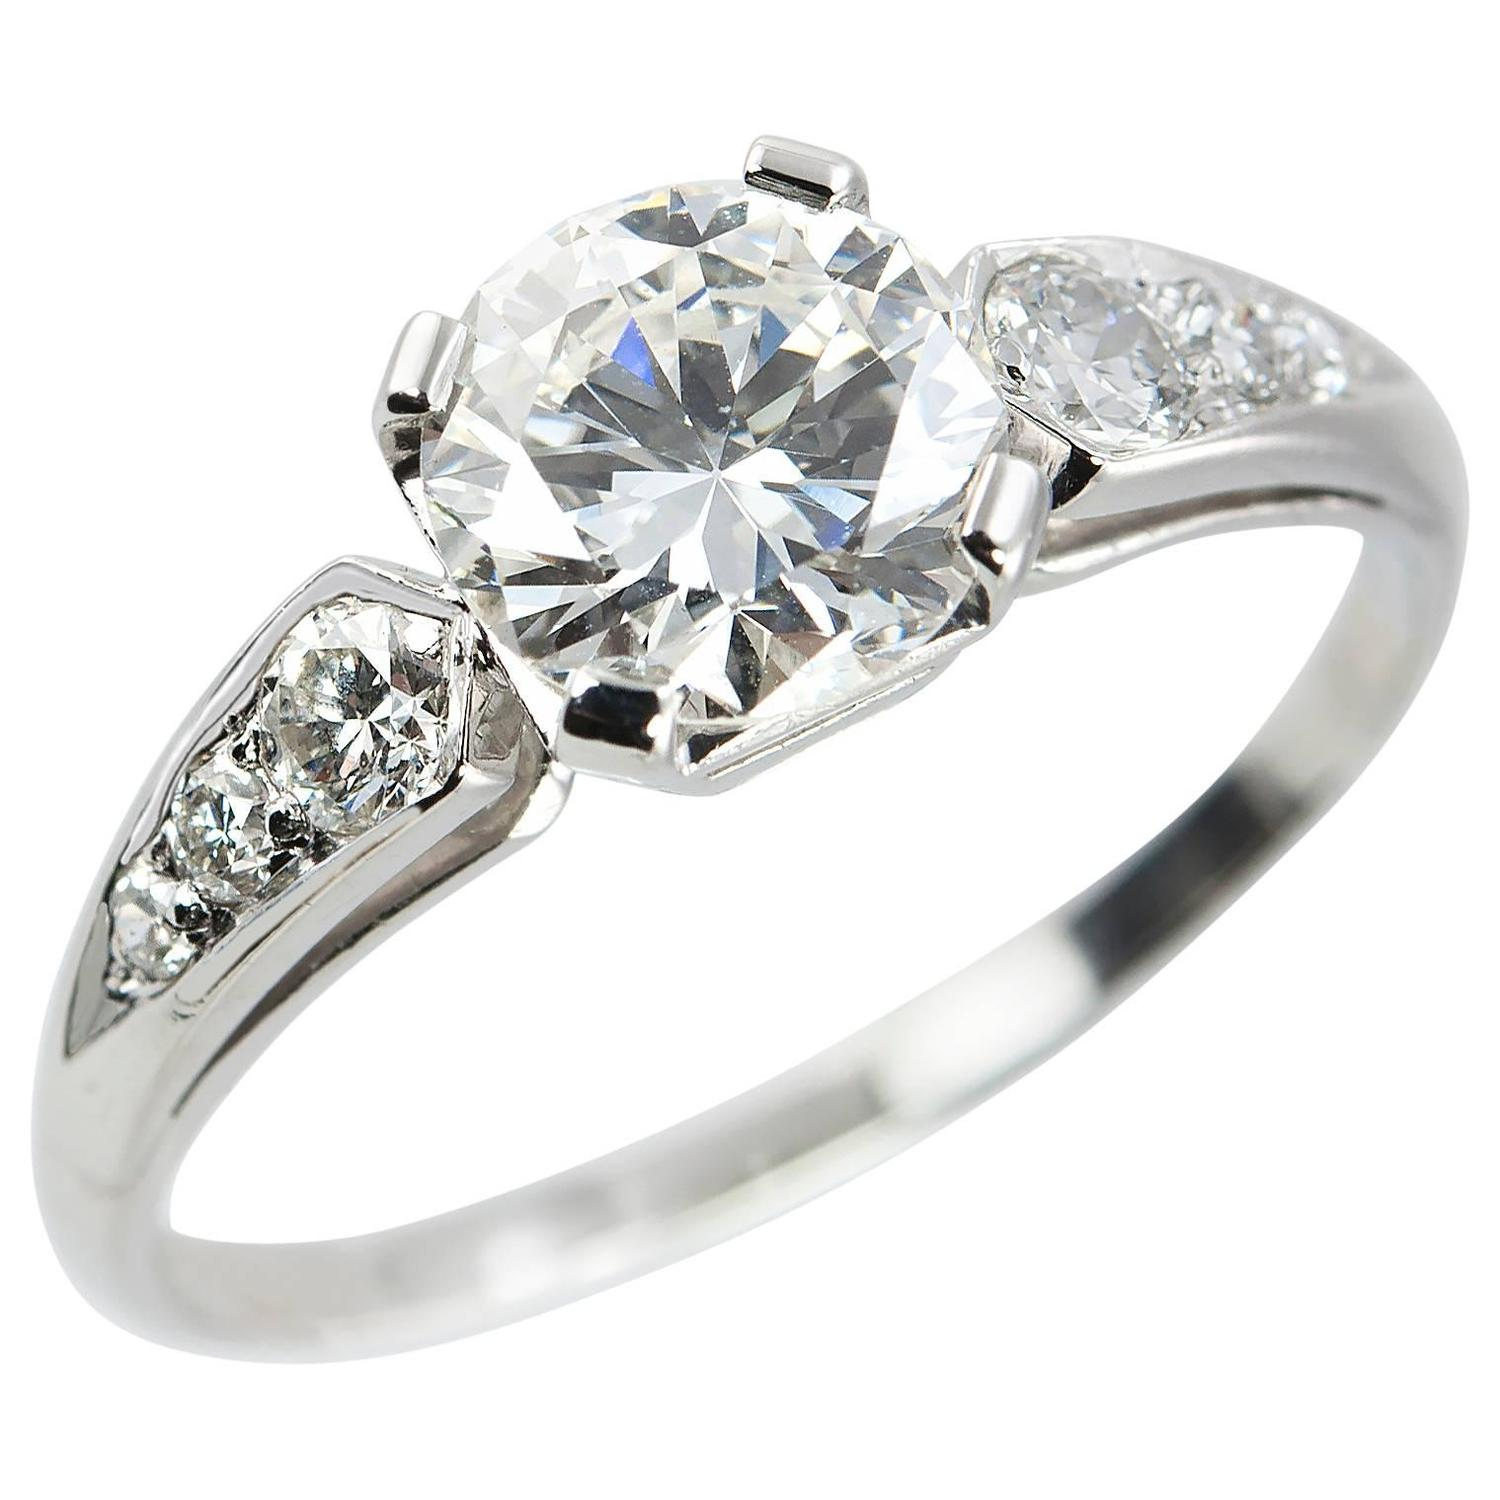 1 05 Carat Diamond And Platinum 1950s Engagement Ring For